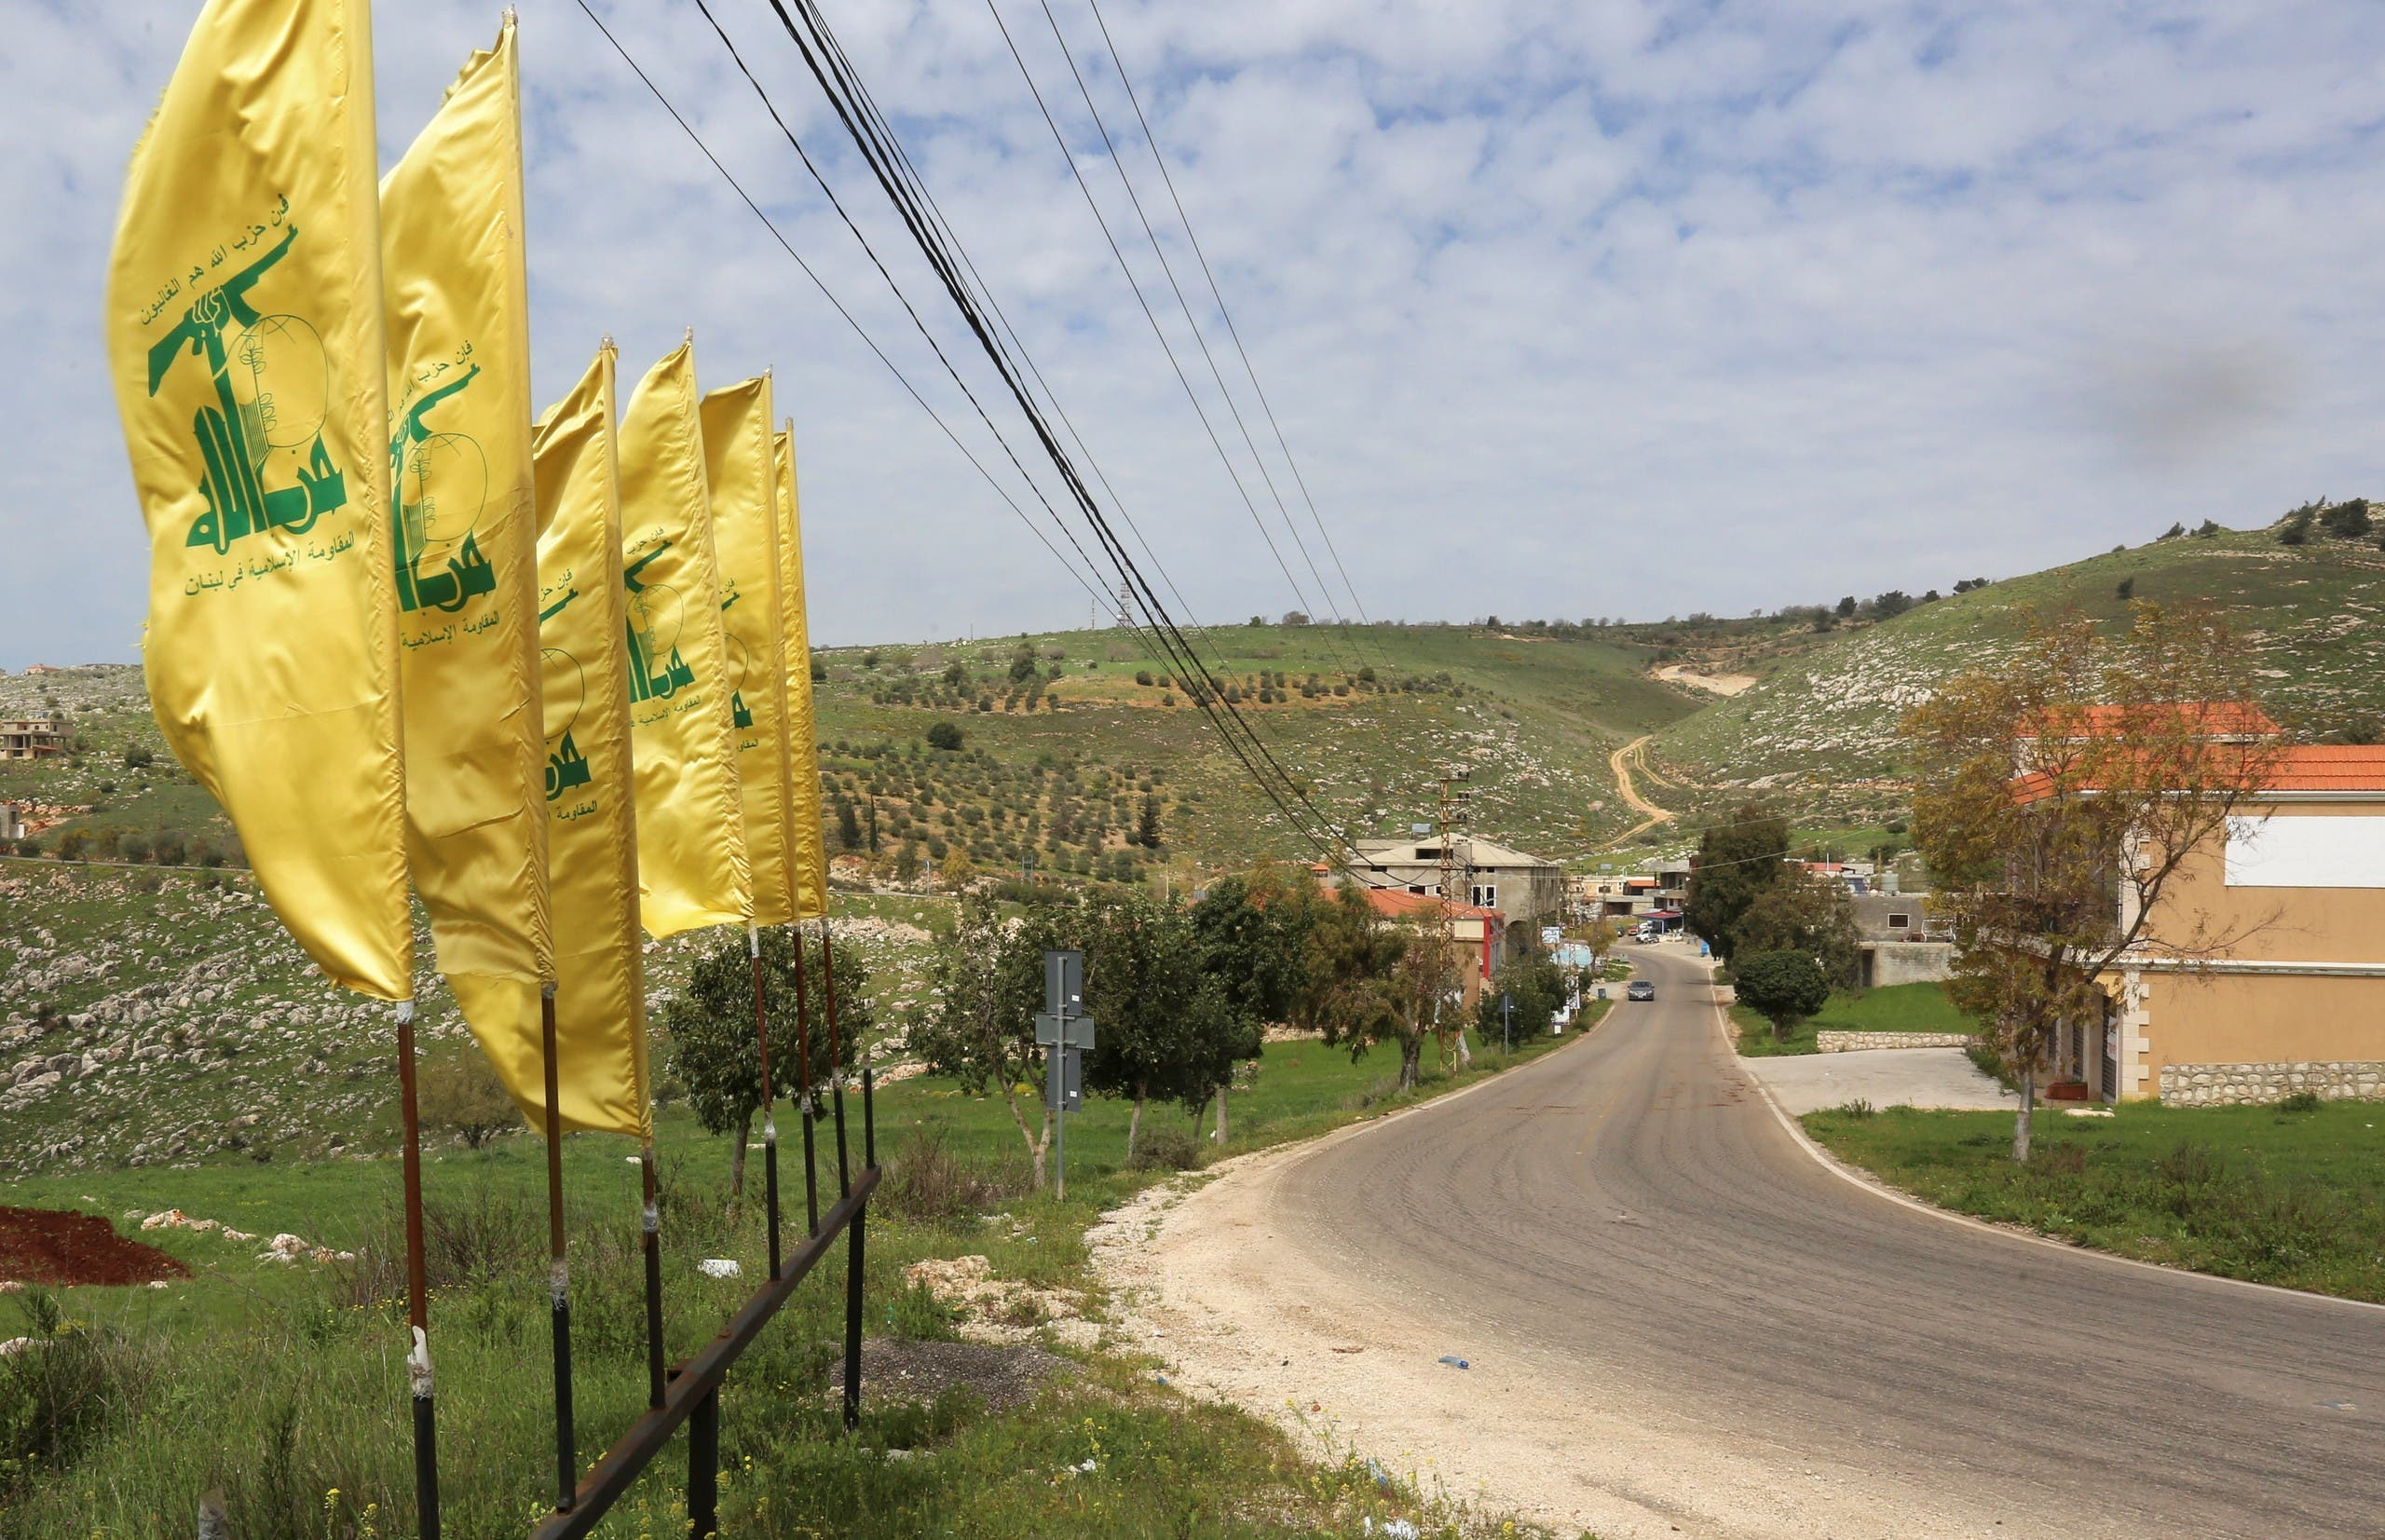 Hezbollah flags flutter along an empty street, at the entrance of Mays Al-Jabal village in Lebanon. (Reuters)